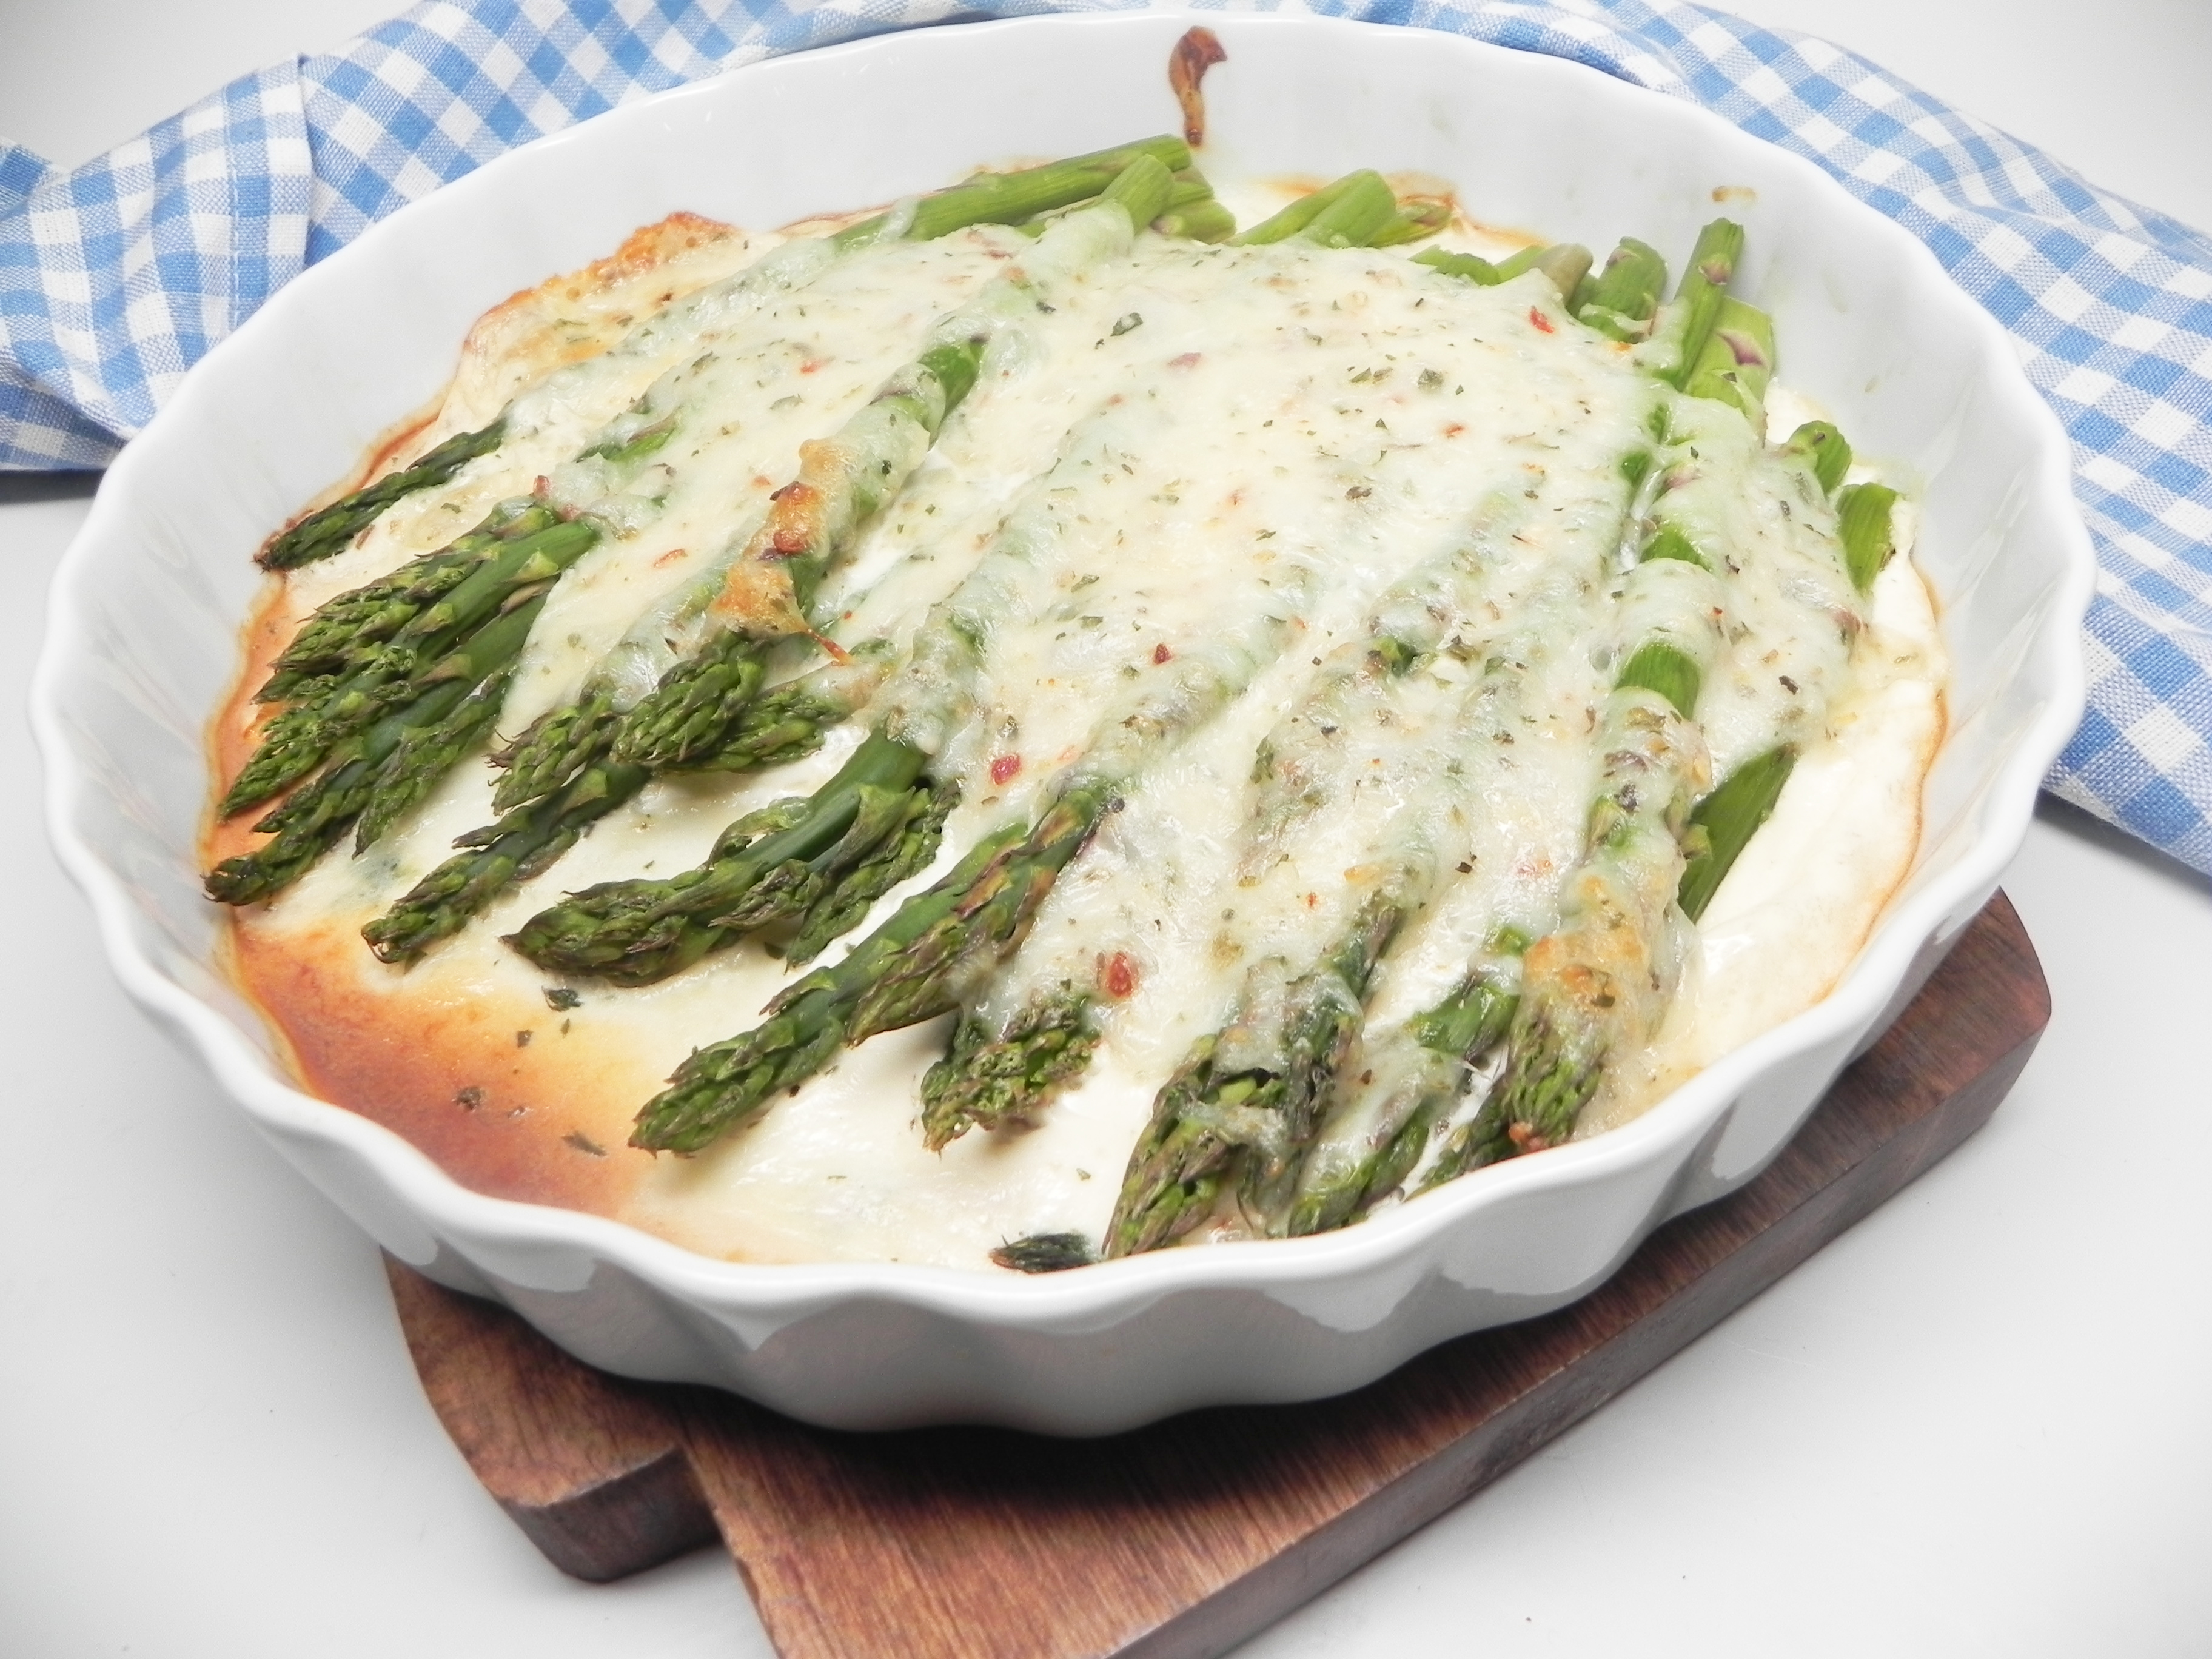 Baked Asparagus with Cheese Sauce